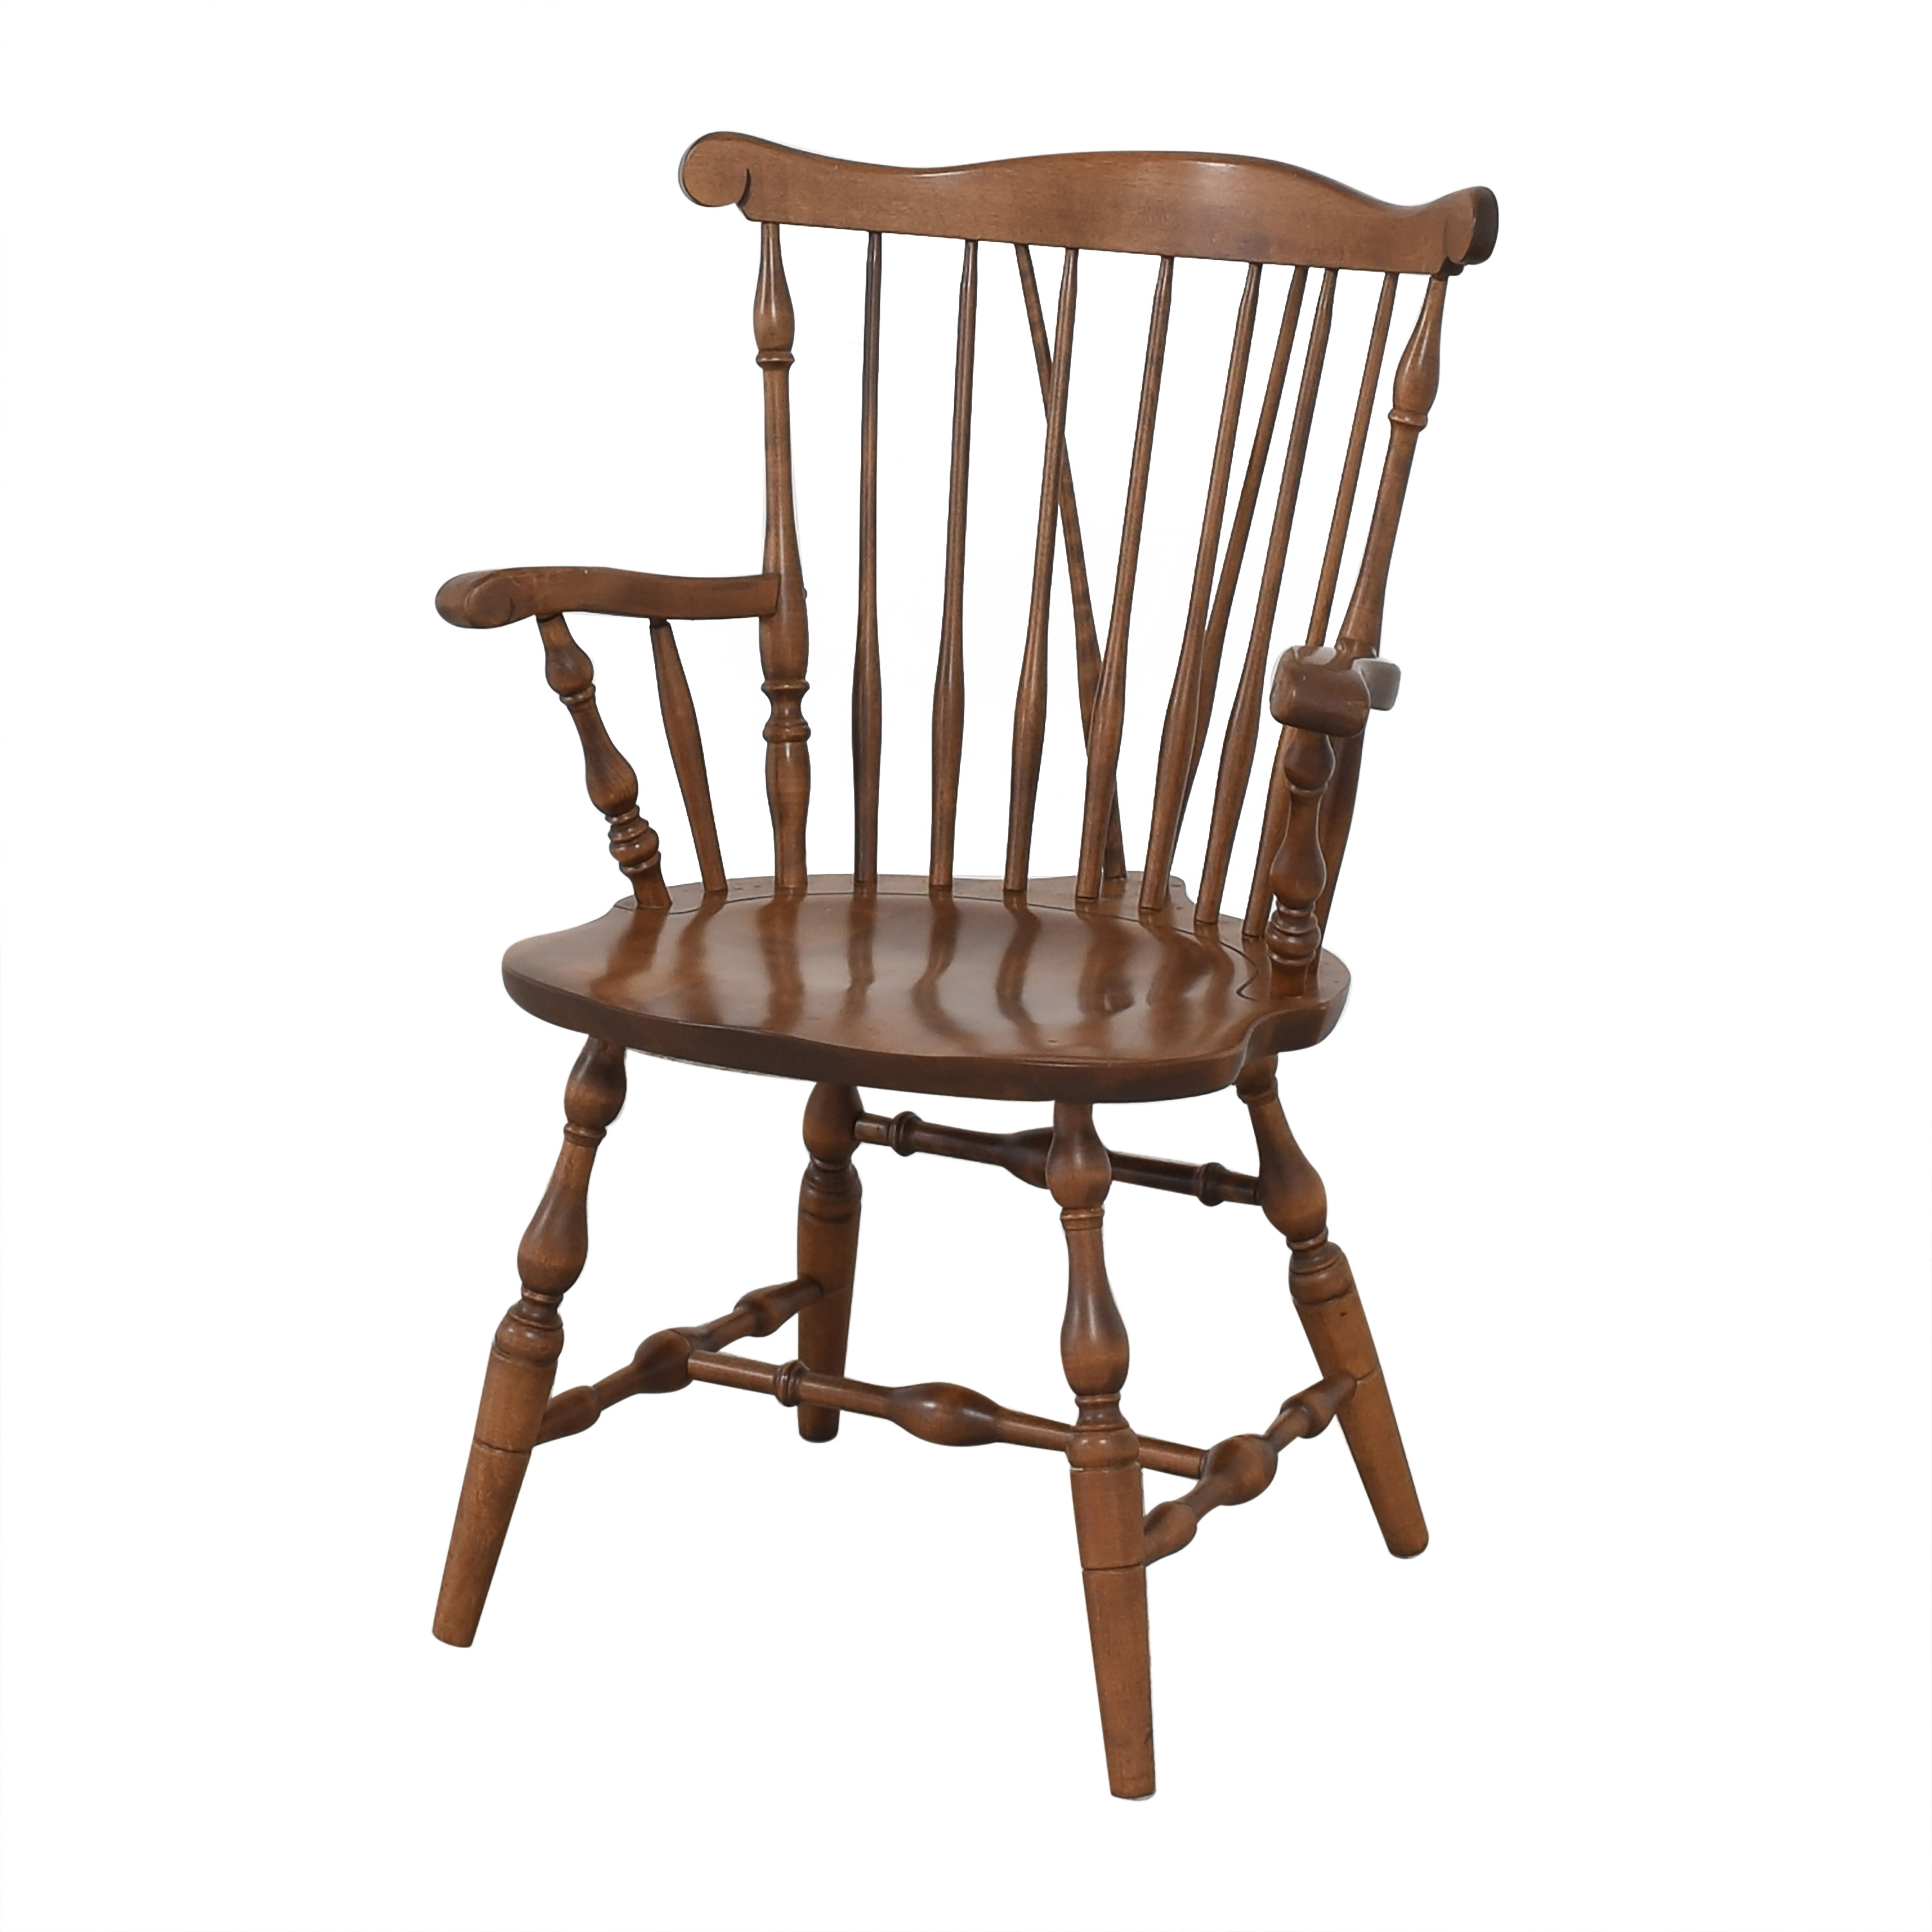 shop S. Bent & Bros Brace Back Windsor Dining Arm Chairs S. Bent & Bros Dining Chairs